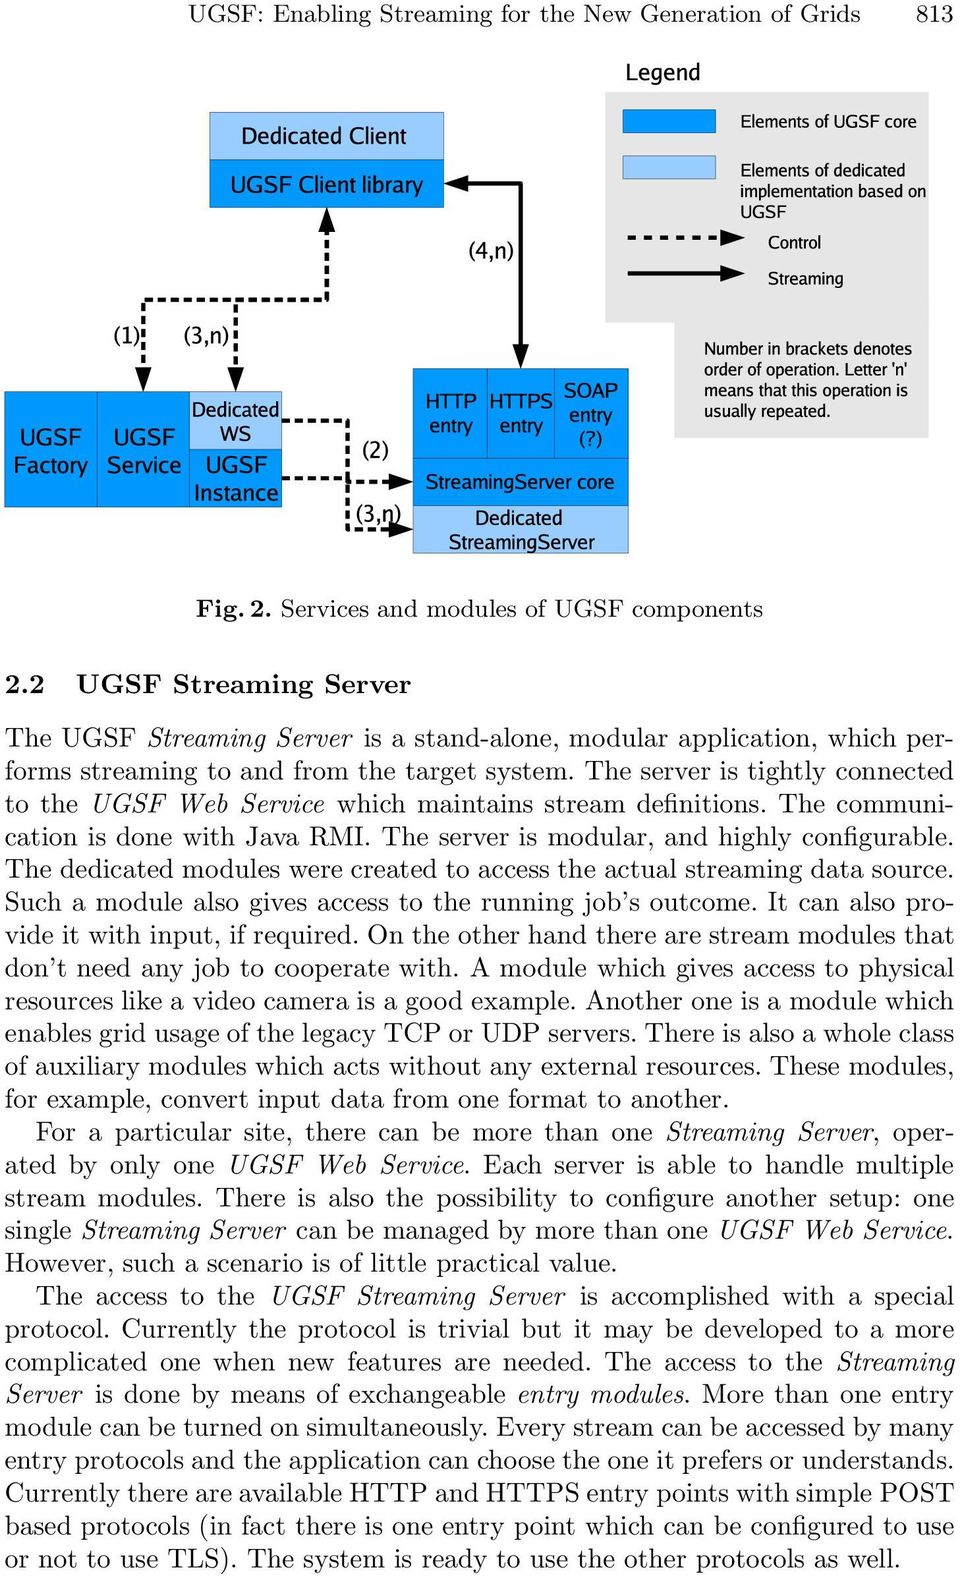 The server is tightly connected to the UGSF Web Service which maintains stream definitions. The communication is done with Java RMI. The server is modular, and highly configurable.